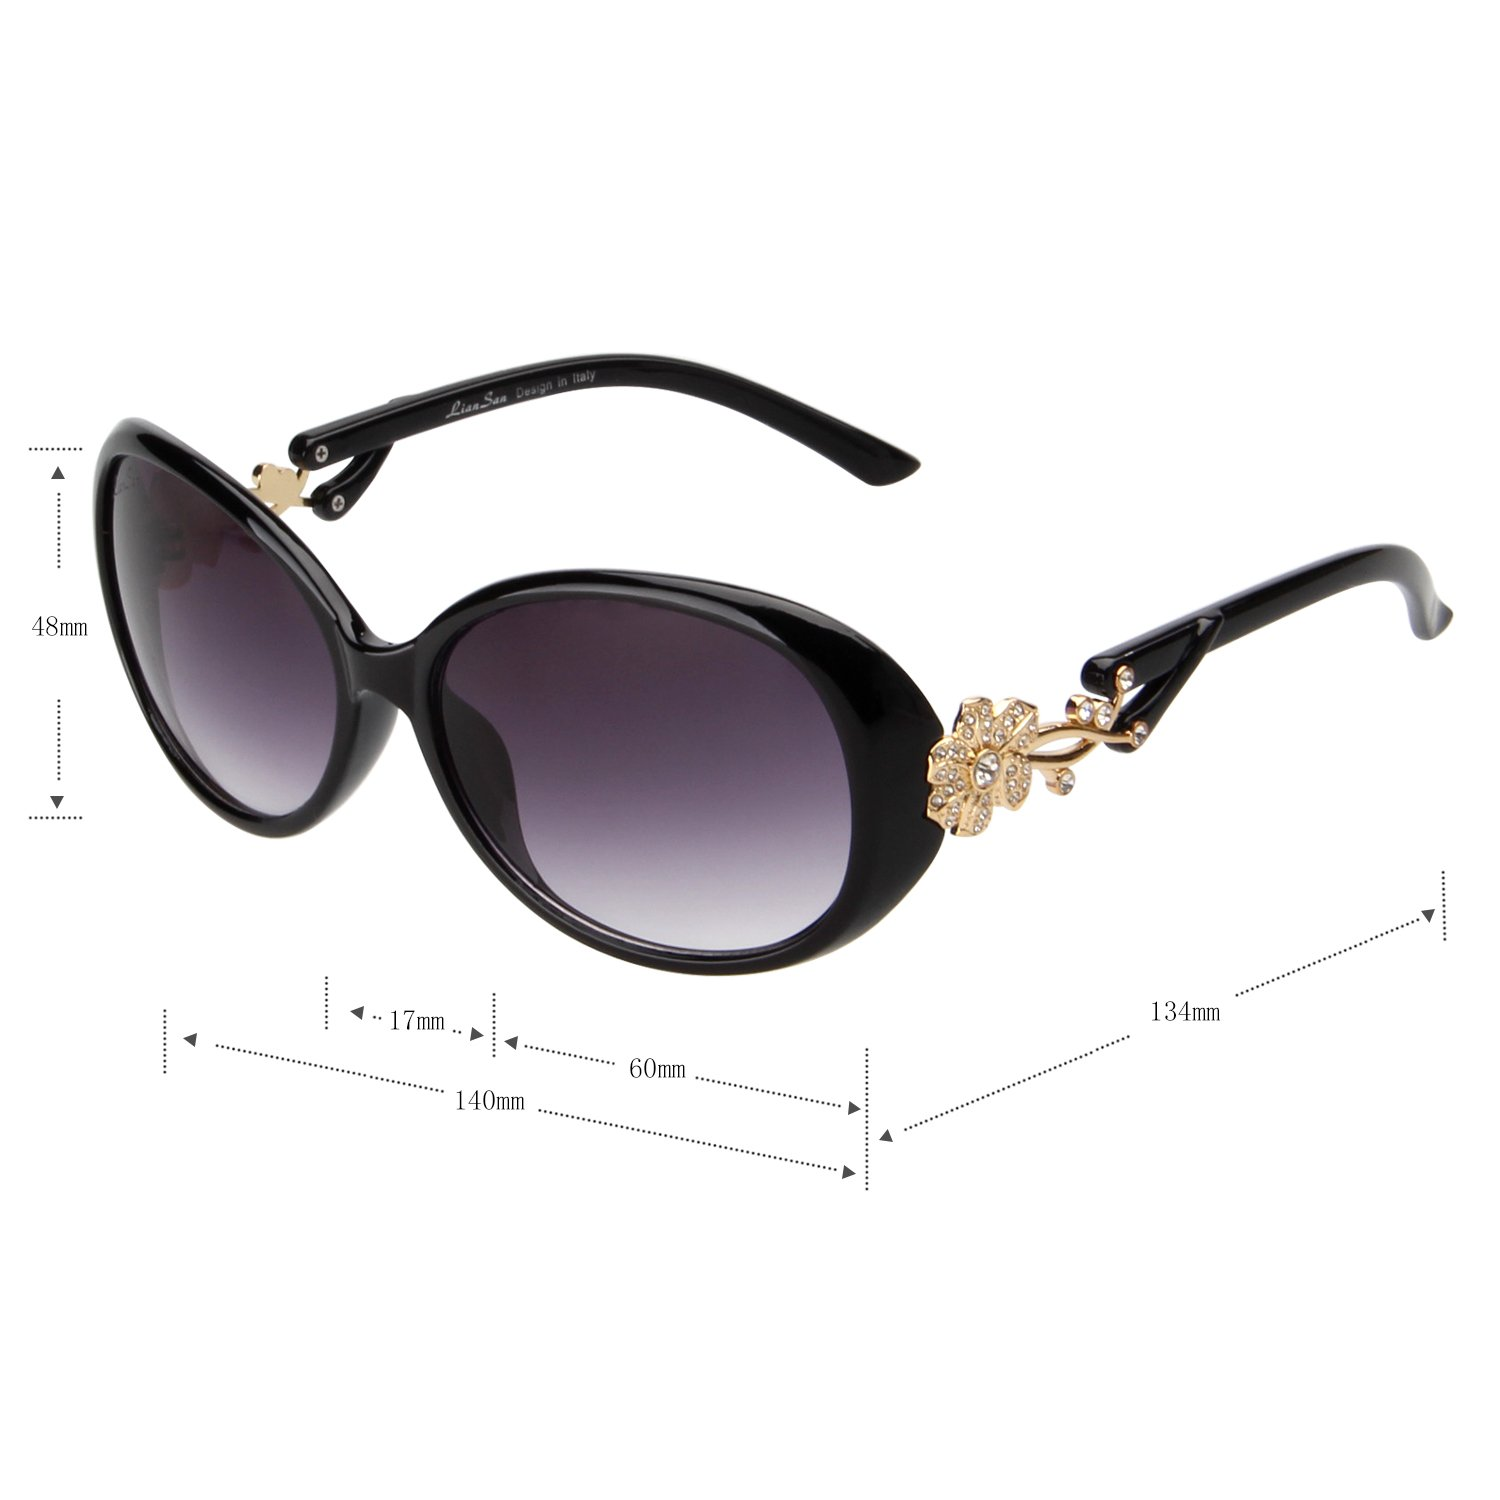 7baf46eae282c Amazon.com  LianSan Fashion Oversized Women Uv400 Protection Polarized Lady  Sunglasses Gold Flower Full Frame Sunglasses Gd103 (Black)  Shoes